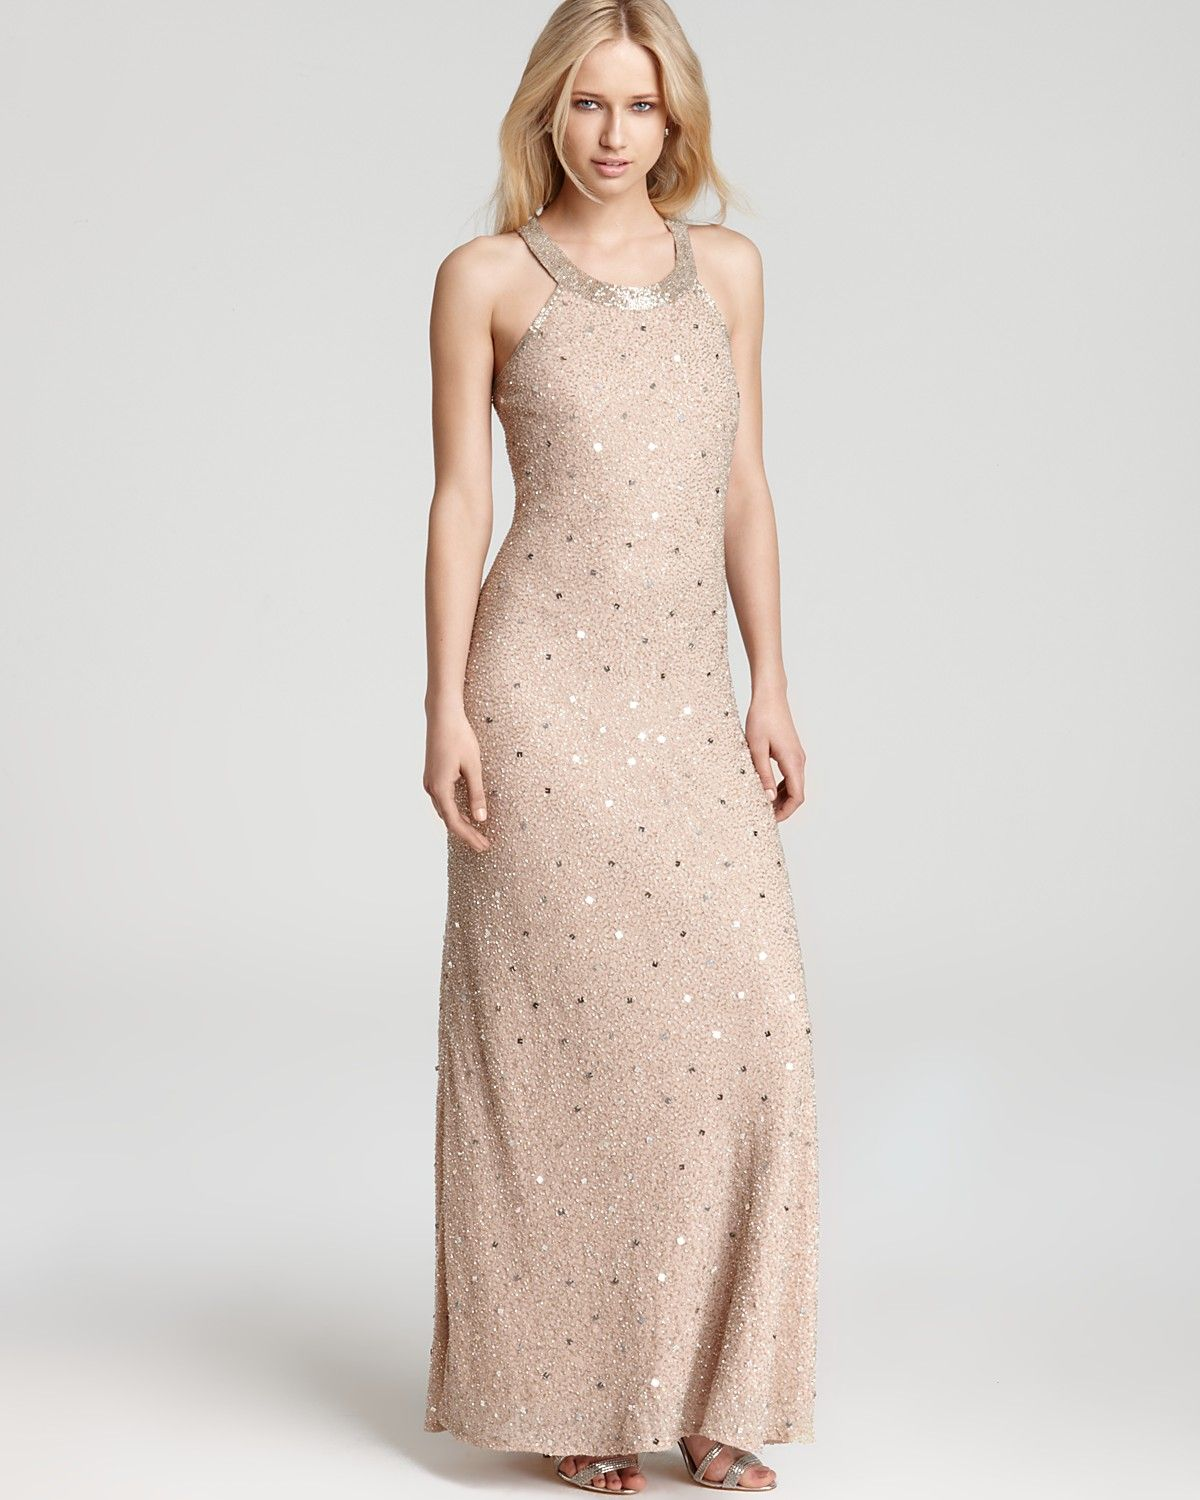 Adrianna Papell Beaded Gown - High Neck | Bloomingdale's